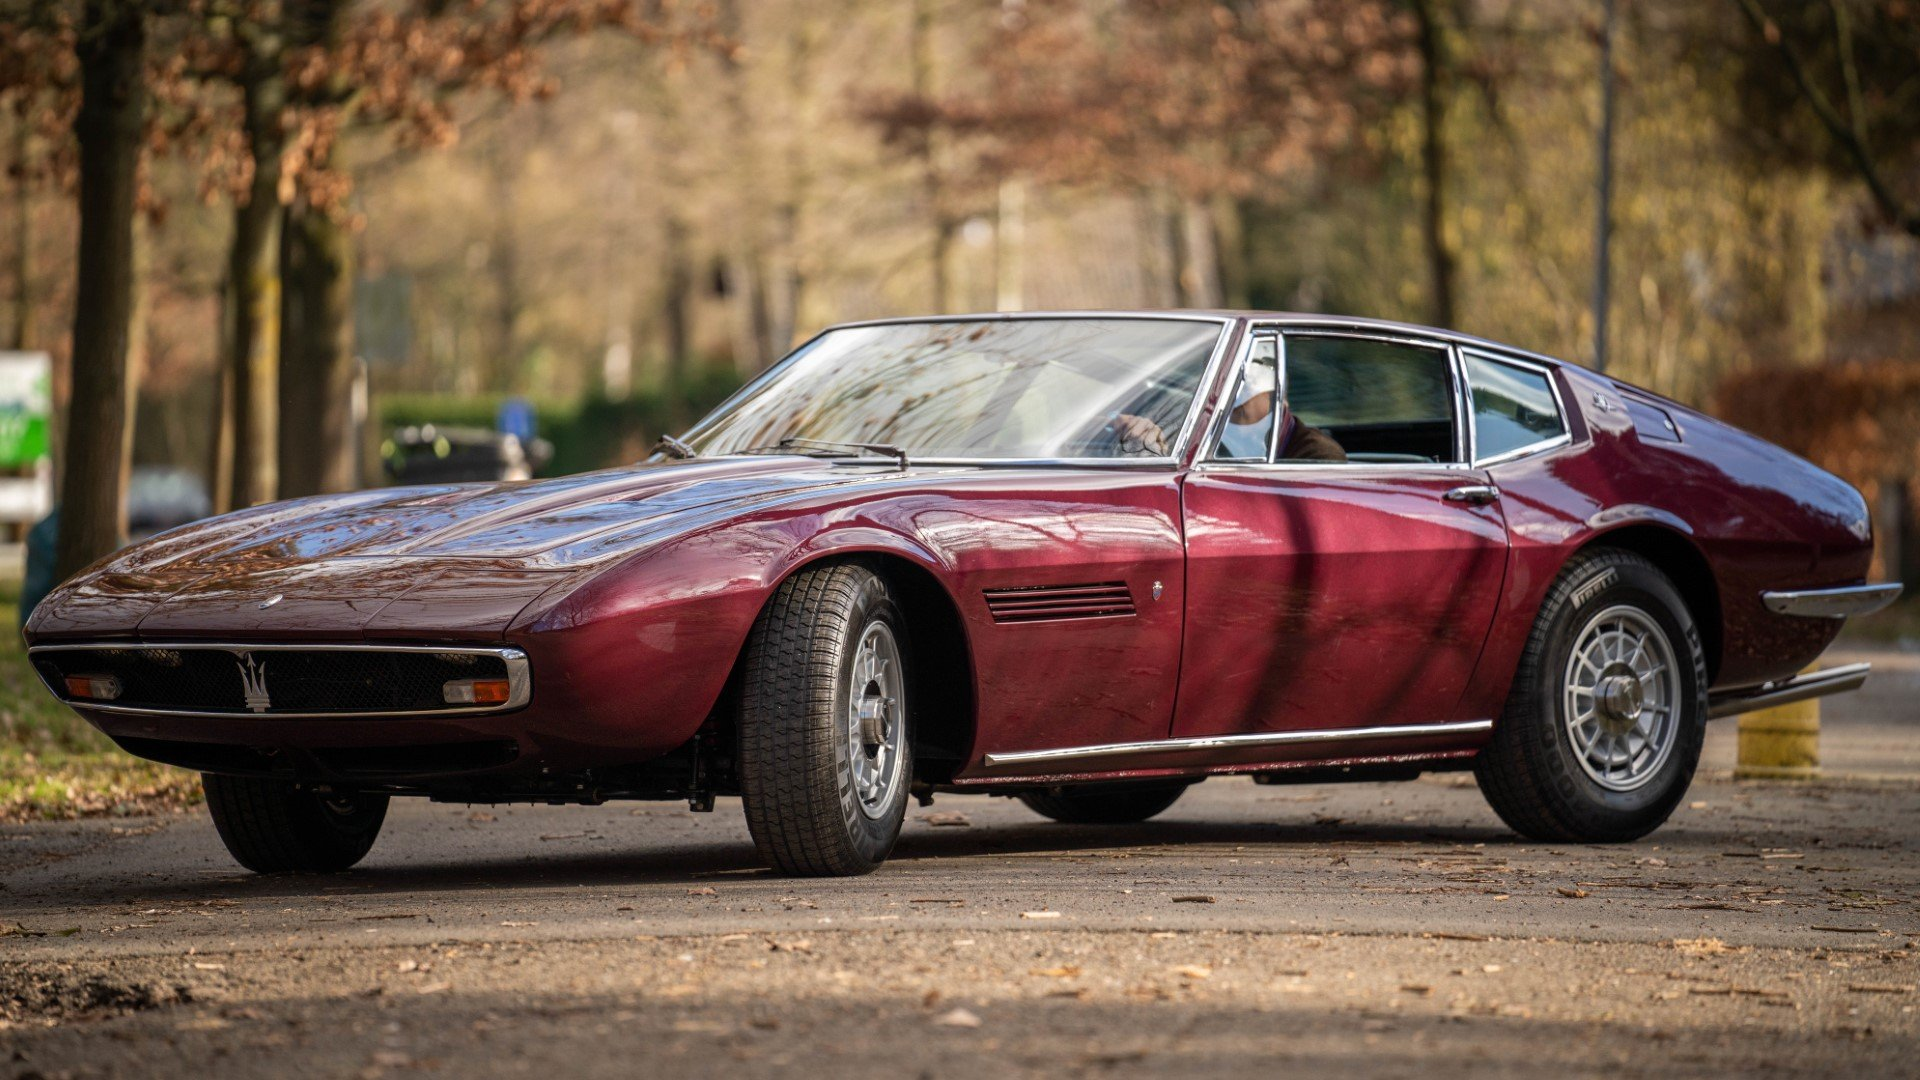 MASERATI GHIBLI Coupe superb restoration (1968) For Sale (picture 2 of 6)